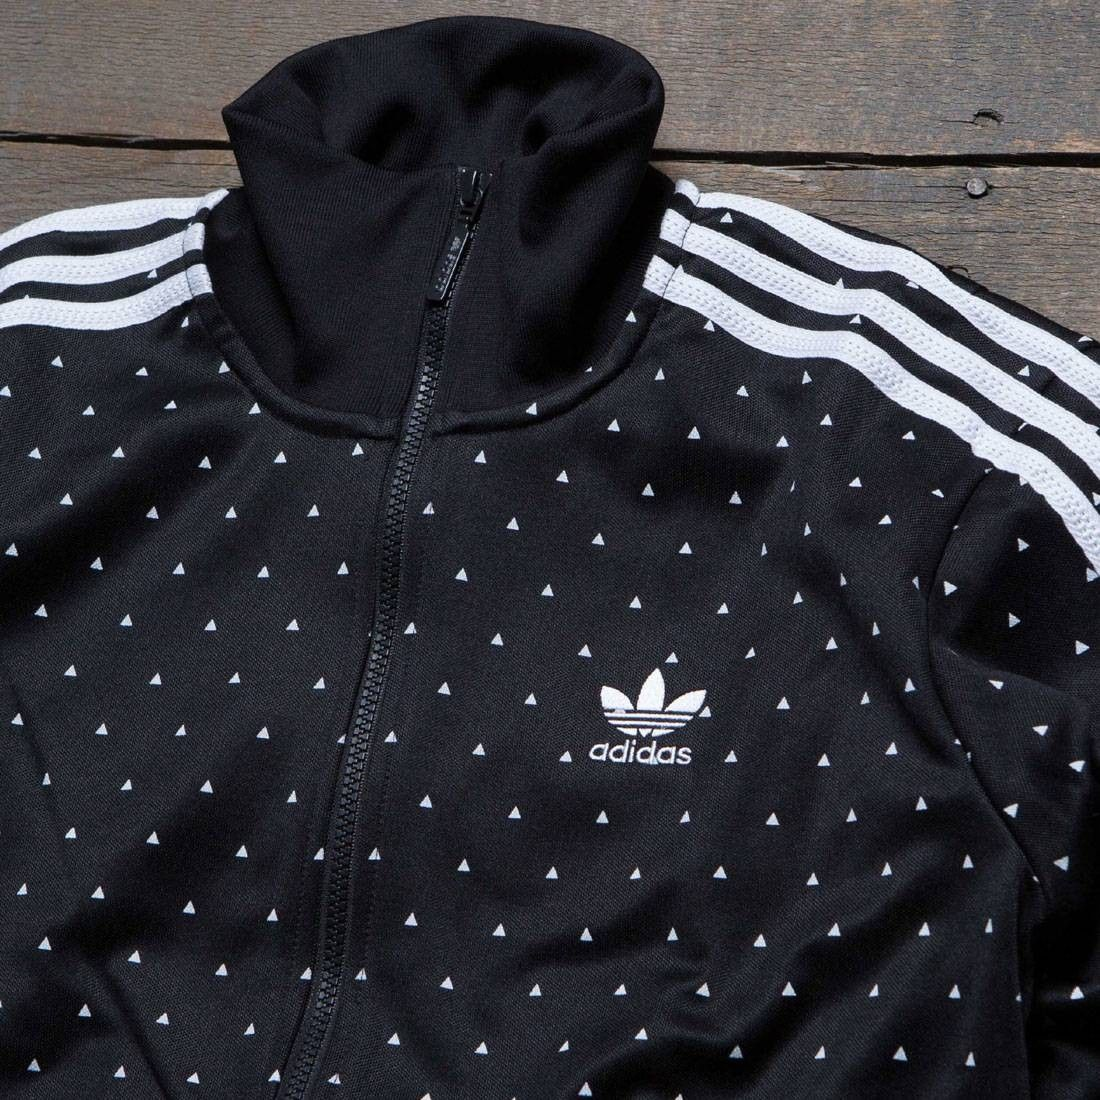 adidas pharrell williams jacket japanese